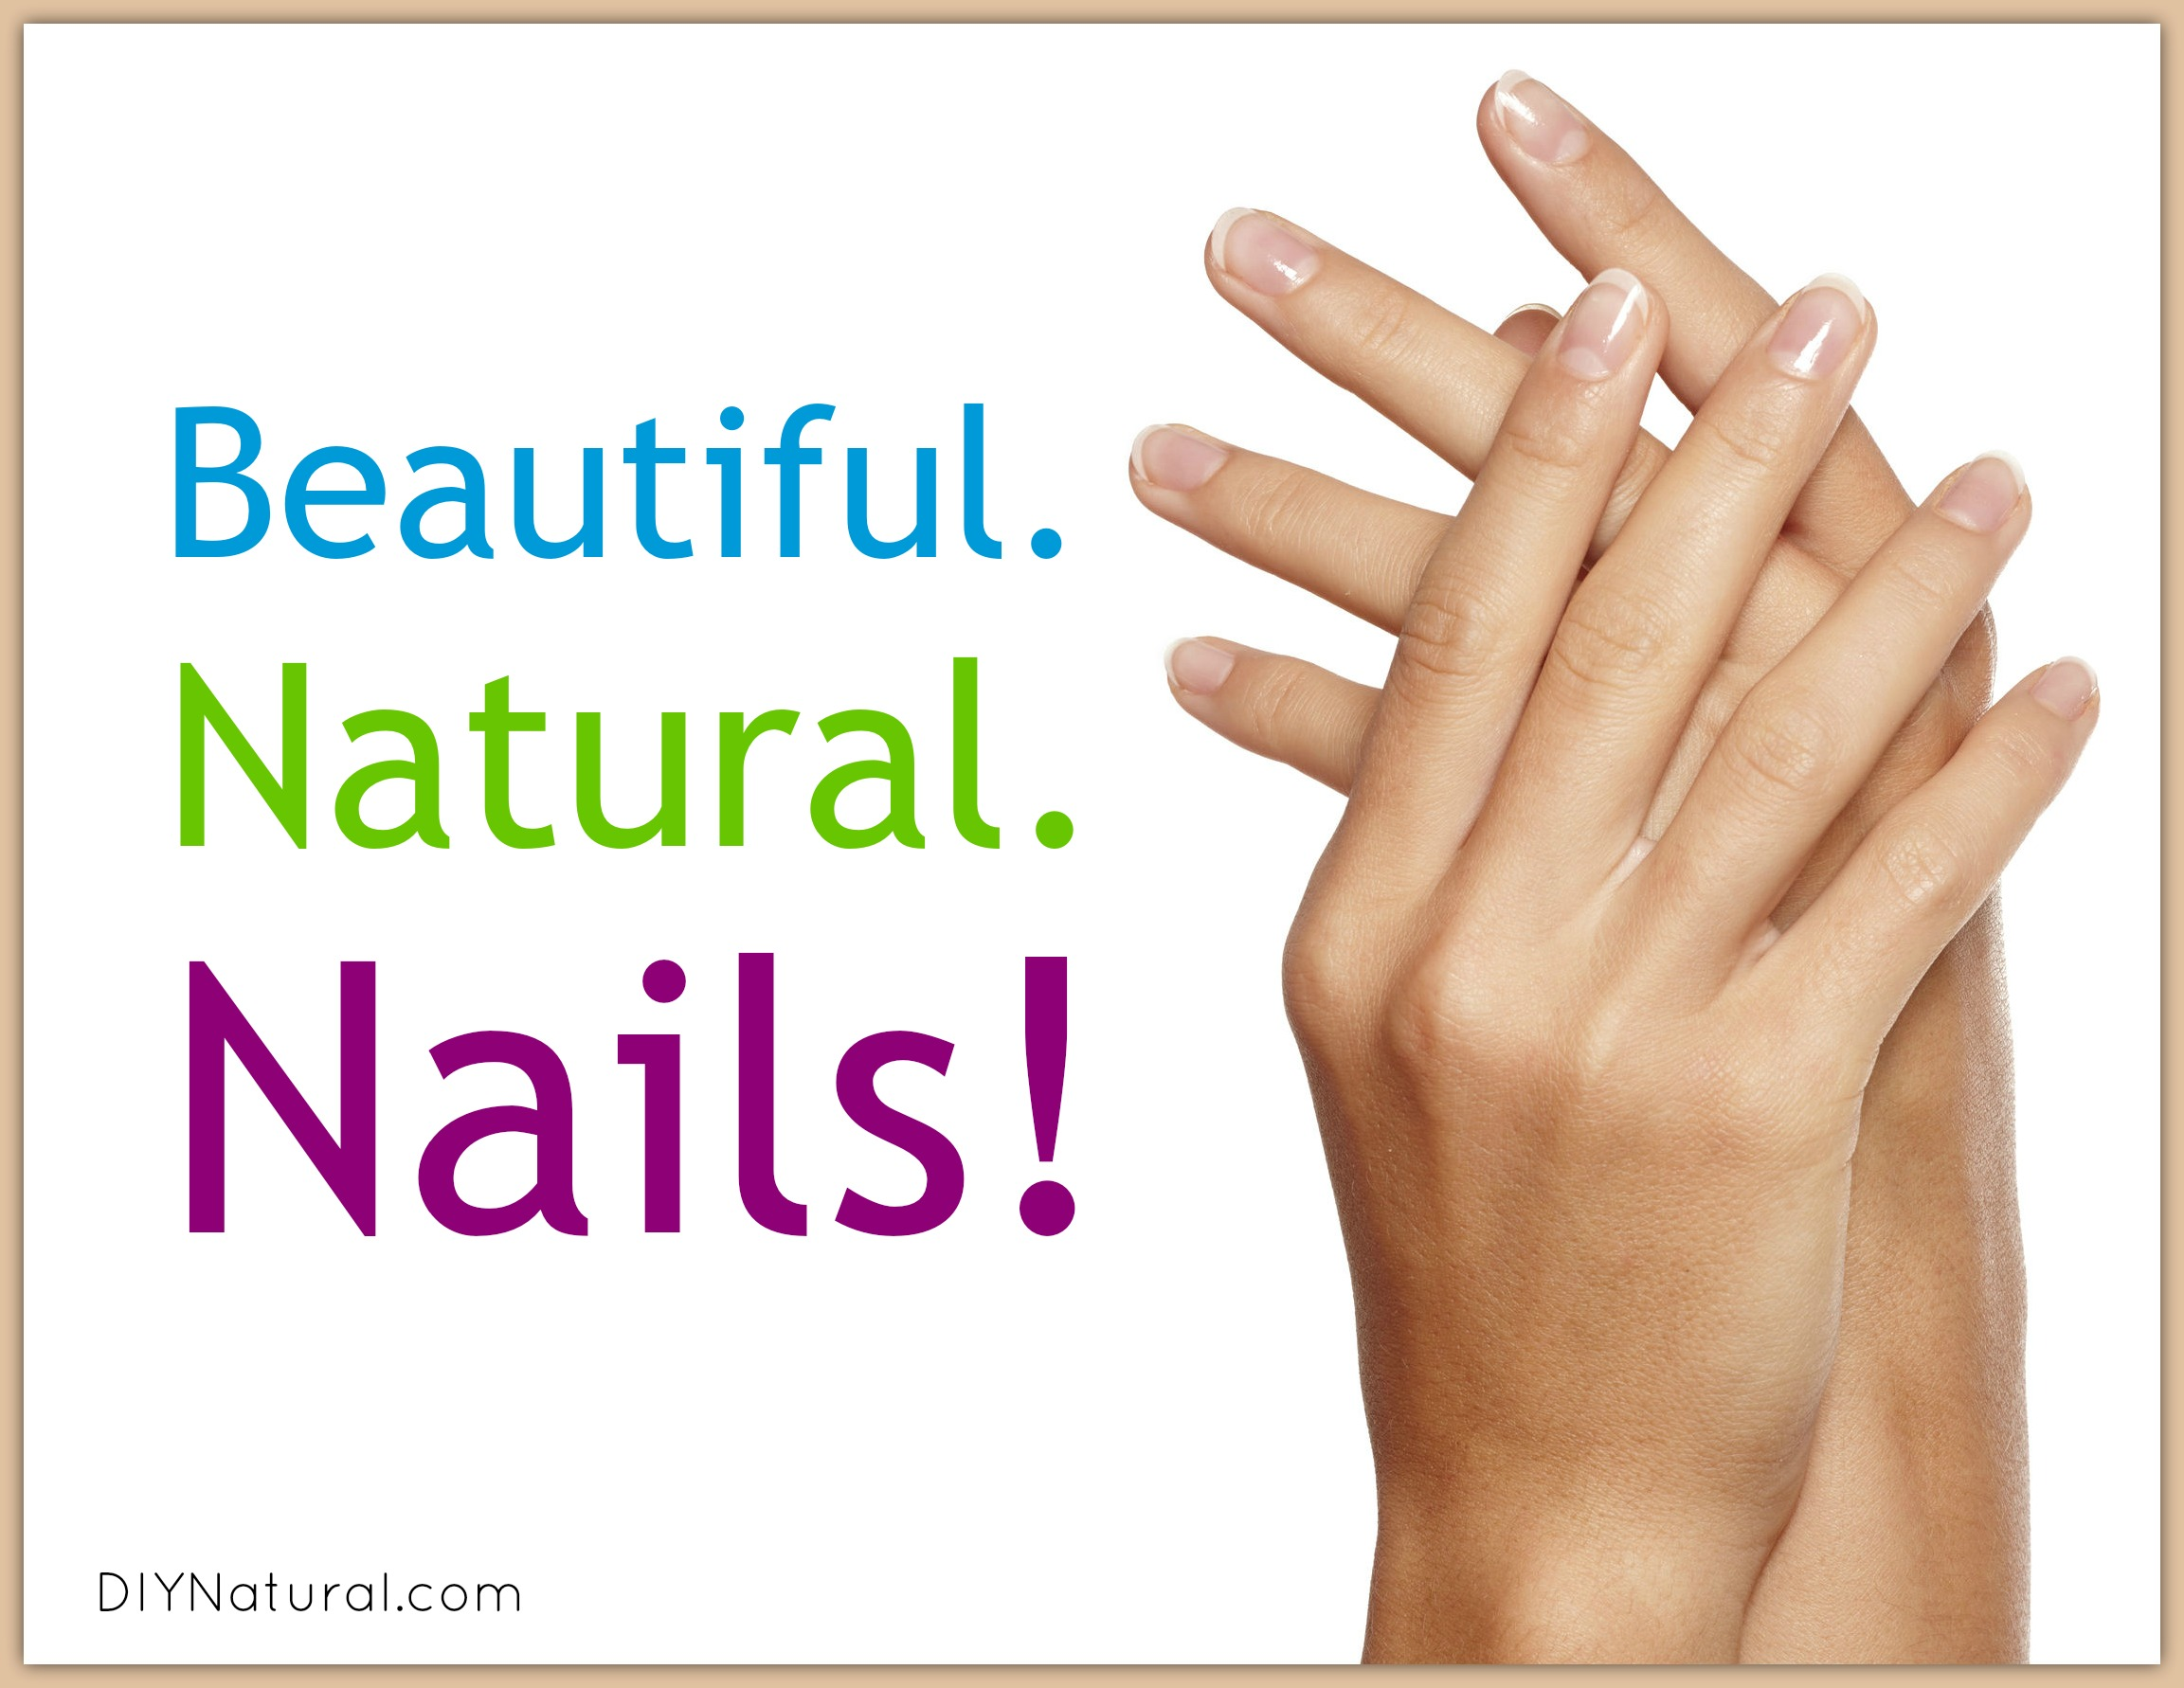 7 Simple Ways To Keep Your Nails From Breaking So Much 7 Simple Ways To Keep Your Nails From Breaking So Much new photo